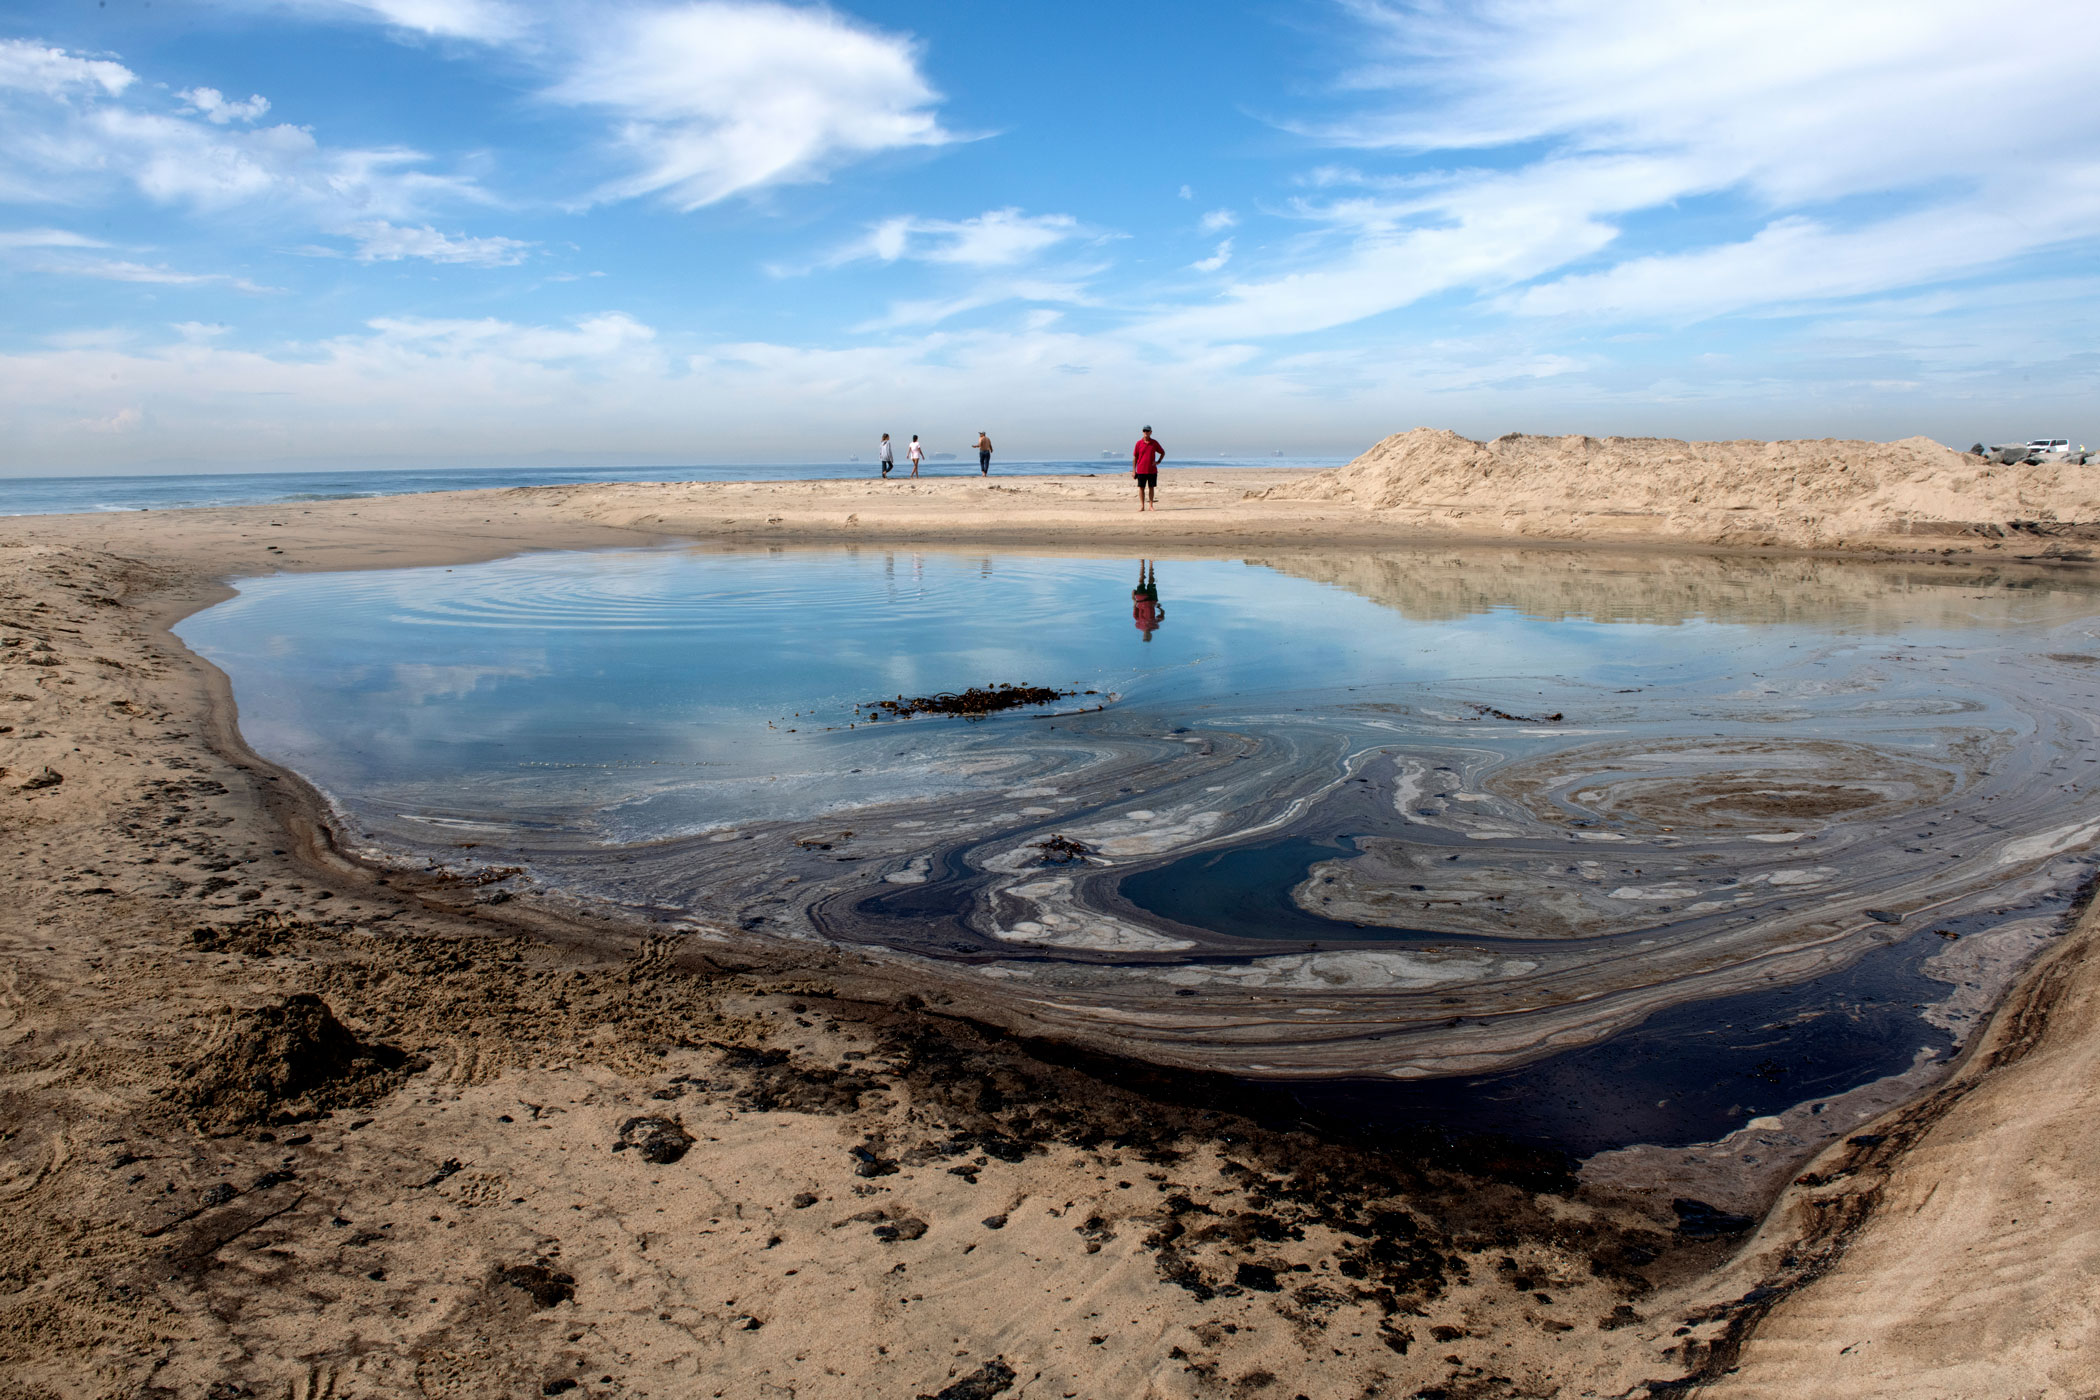 Recent oil spill in Huntington Beach feature included in special report on climate crisis